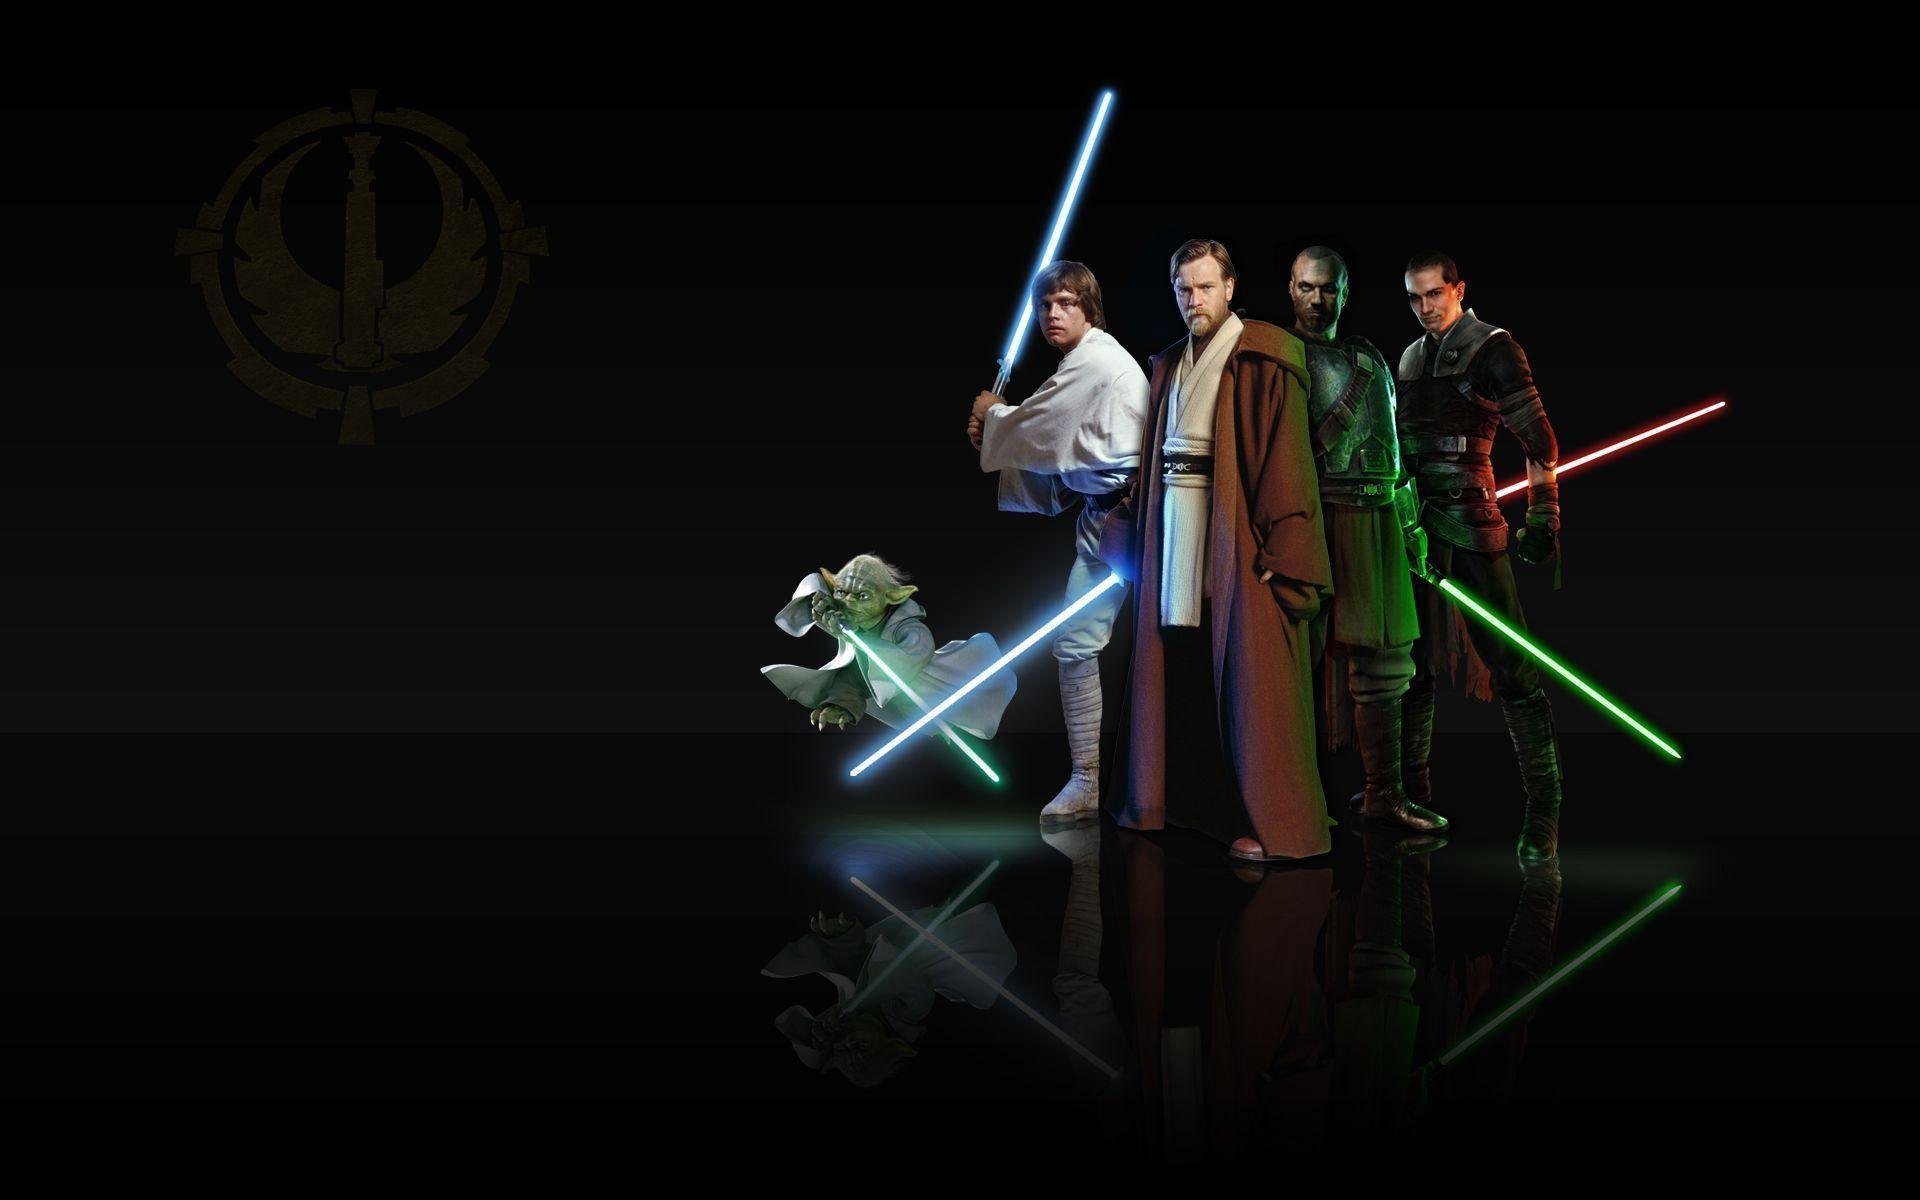 Star Wars Wallpapers 1080p 33372 HD Wallpapers